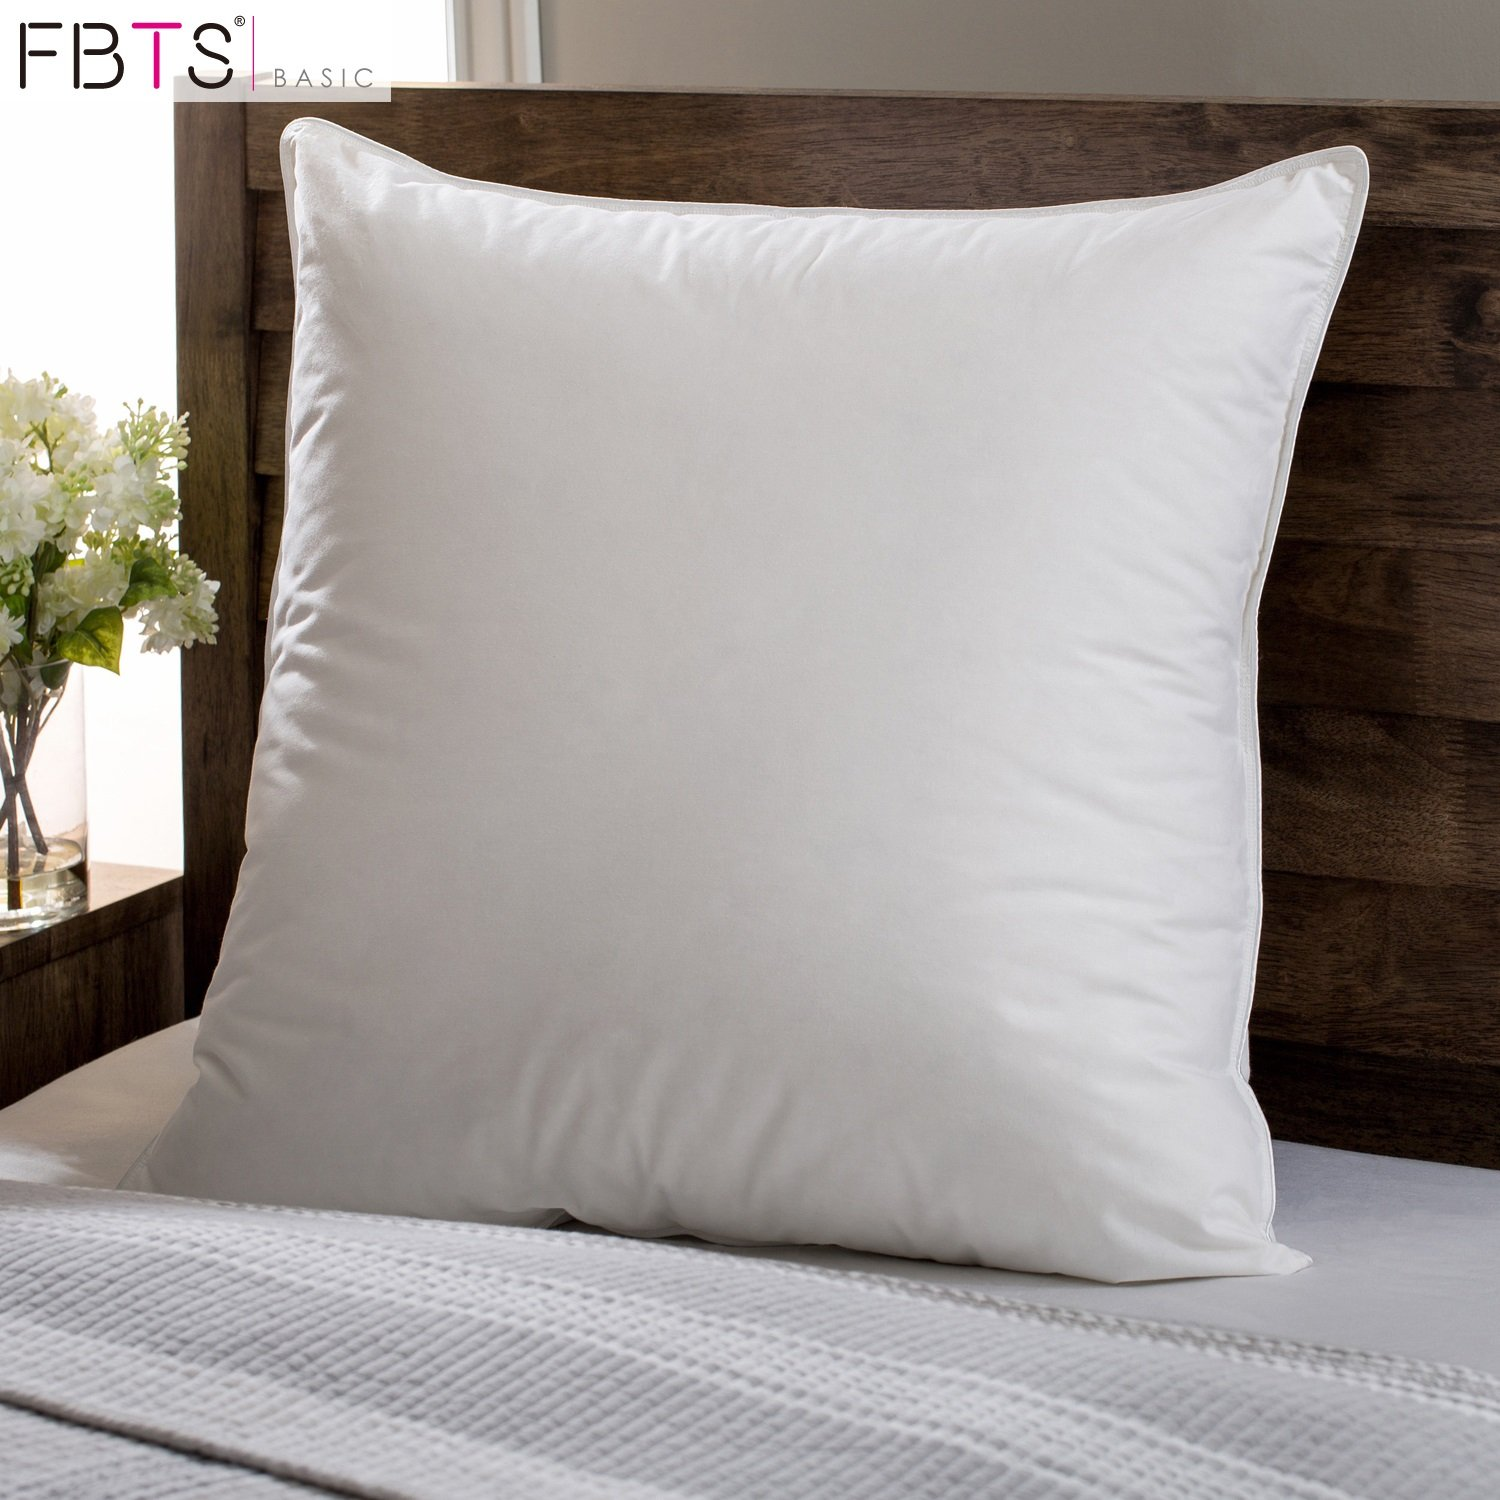 FBTS Basic 95% Feather 5% Down Pillow Insert 18 x 18 Square Sham Stuffer Premium Hypoallergenic Form Cotton Down Proof Shell Decorative Cushion Sofa and Bed Pillows by